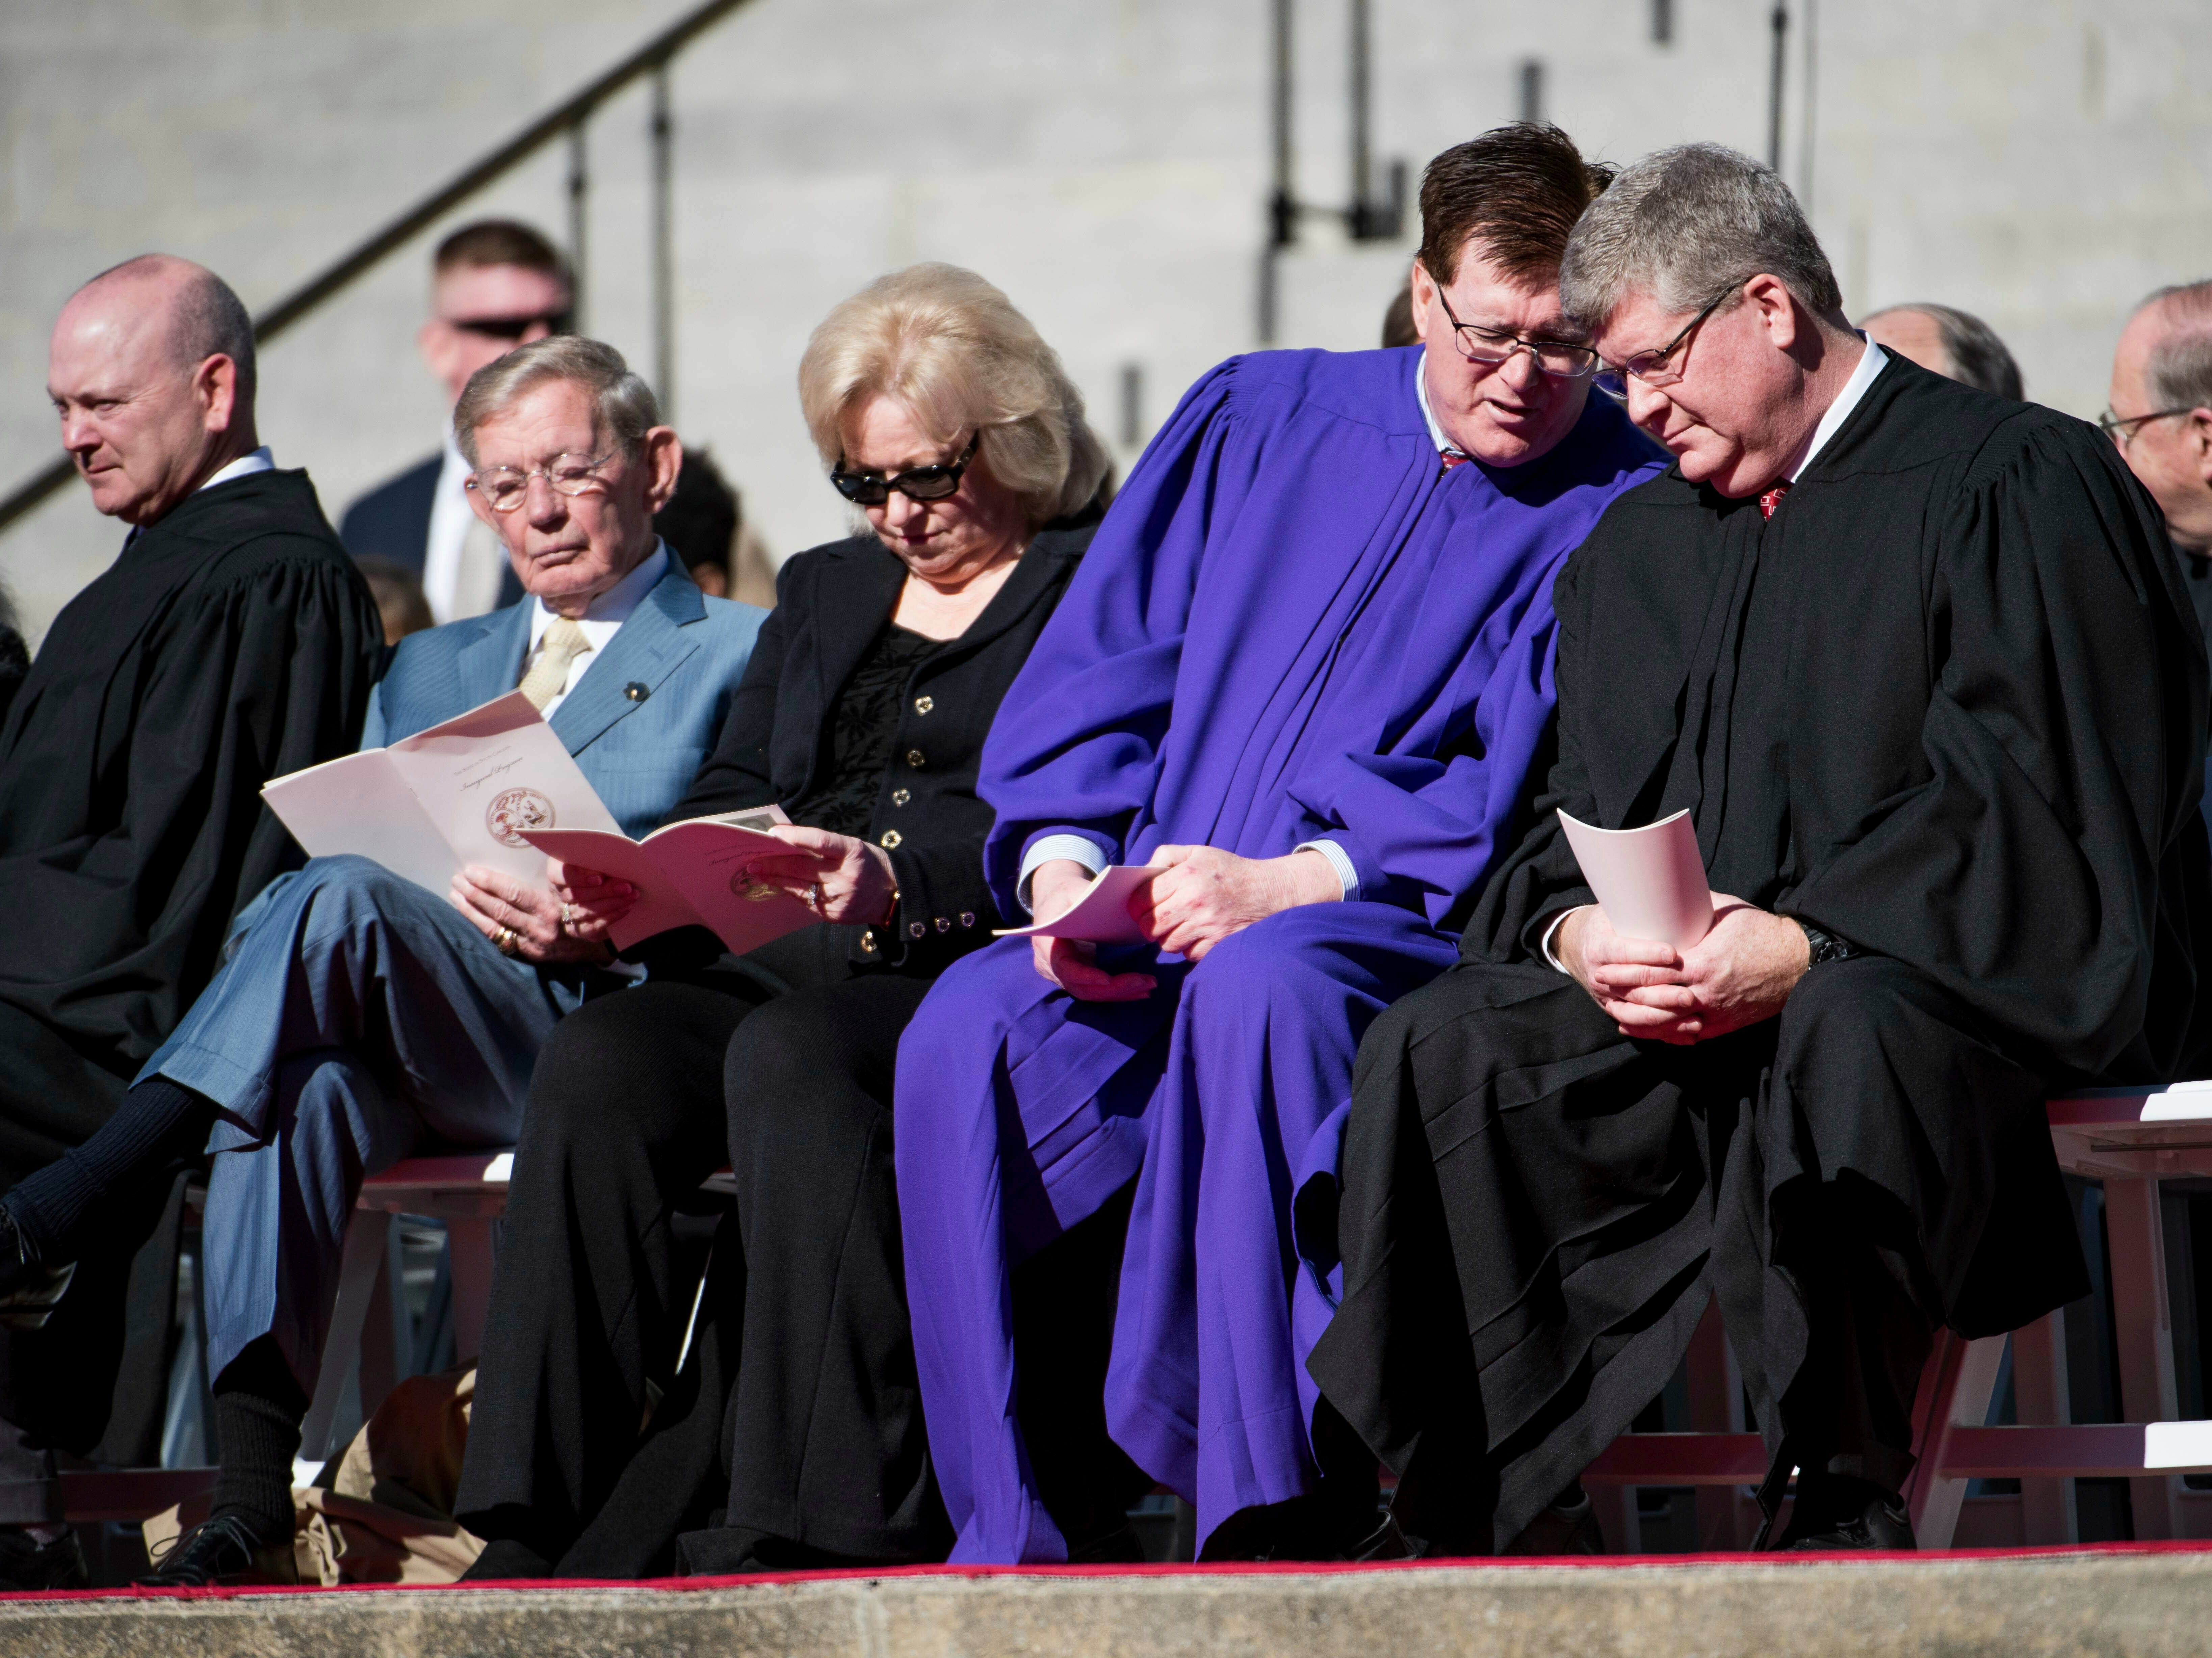 South Carolina House of Representatives Clerk Charles Reid, right, listens to Rep. Jay Lucas, R-Darlington, as Sen. Hugh Leatherman, R-Florence, second from left, and his wife, Jean Leatherman, sit nearby during inauguration ceremonies for Governor Henry McMaster at the South Carolina Statehouse, Wednesday, Jan. 9, 2019, in Columbia, S.C. (AP Photo/Sean Rayford)